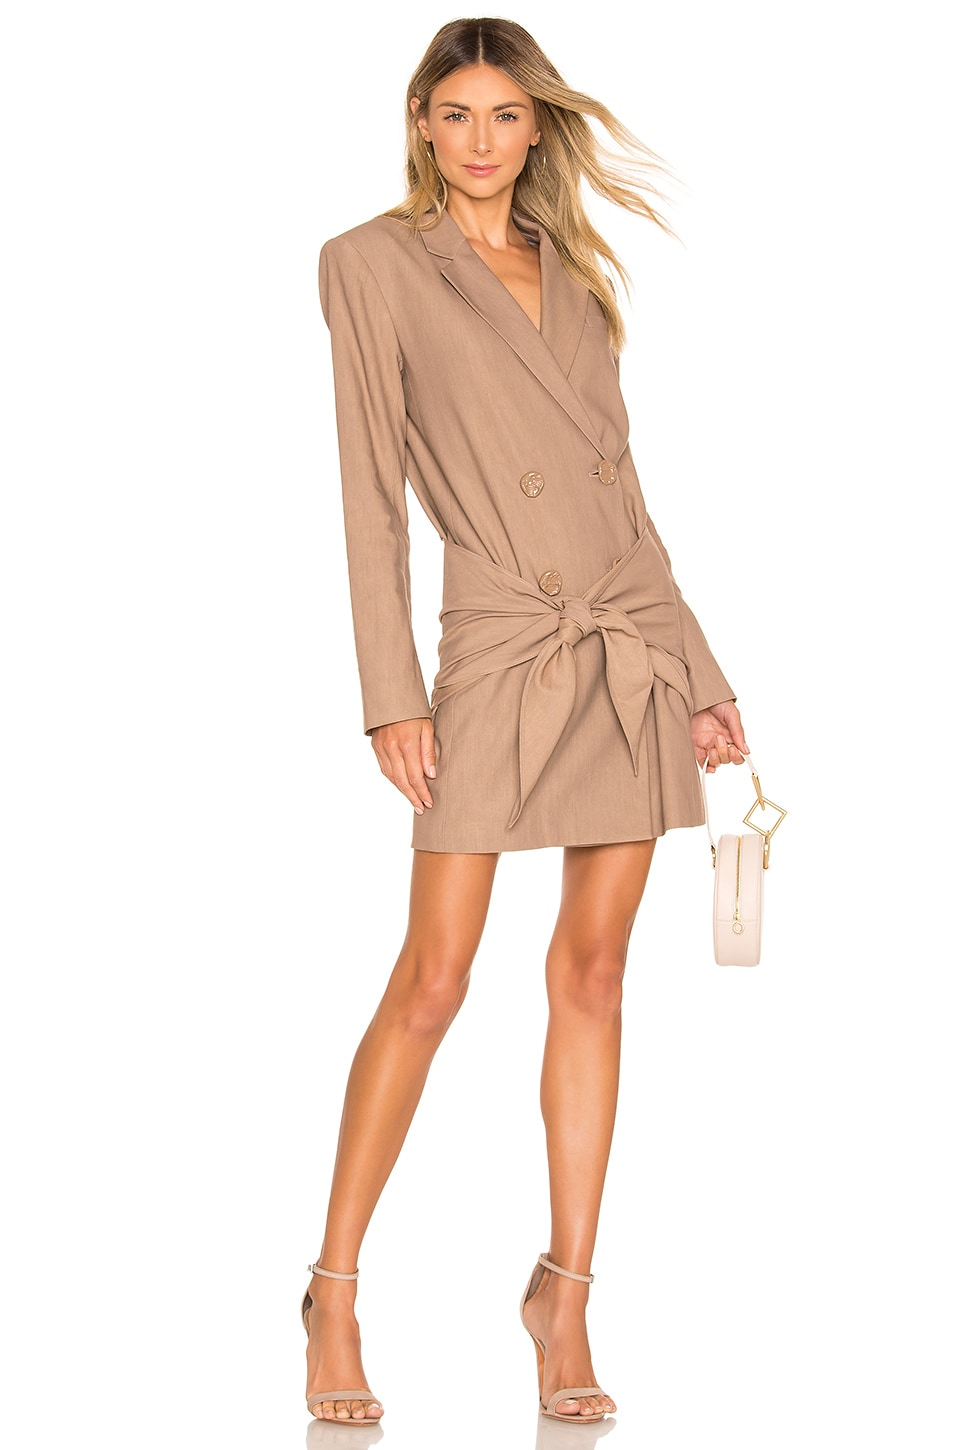 Tibi Blazers TIBI BLAZER DRESS IN TAN.